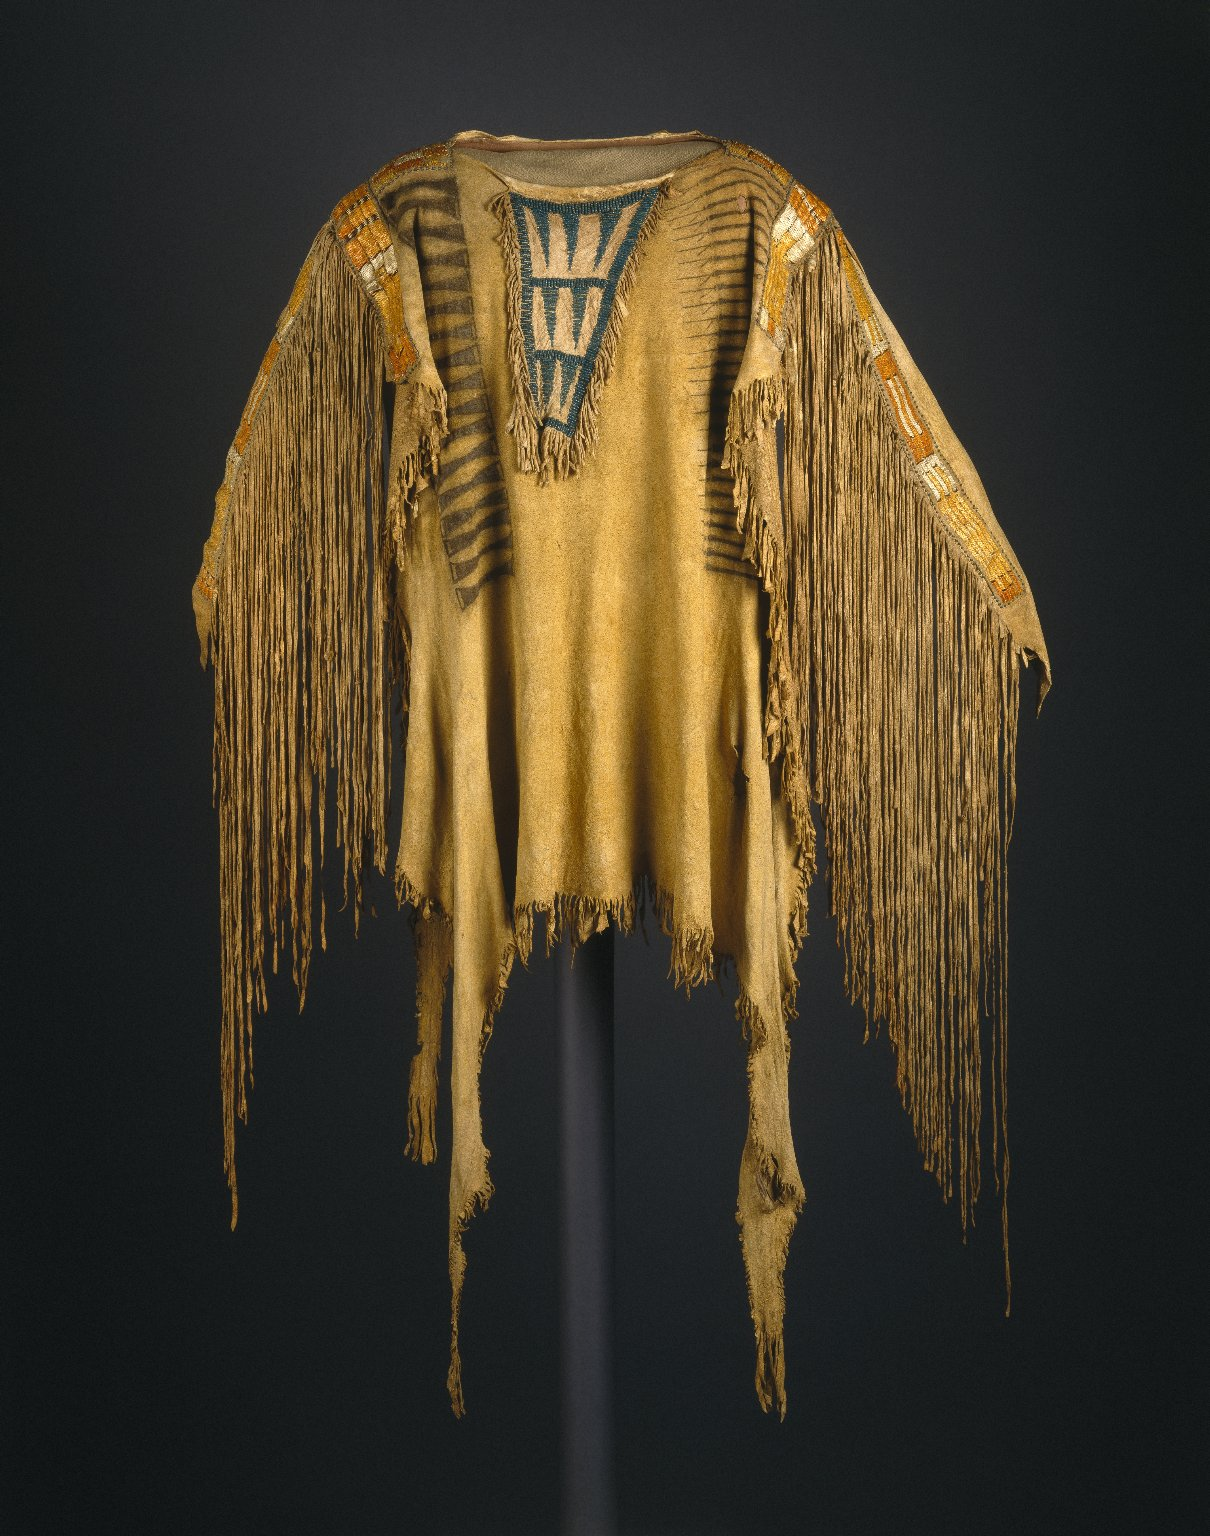 Native Americans: Dakota and Lakota Sioux History and Pictures of sioux clothing